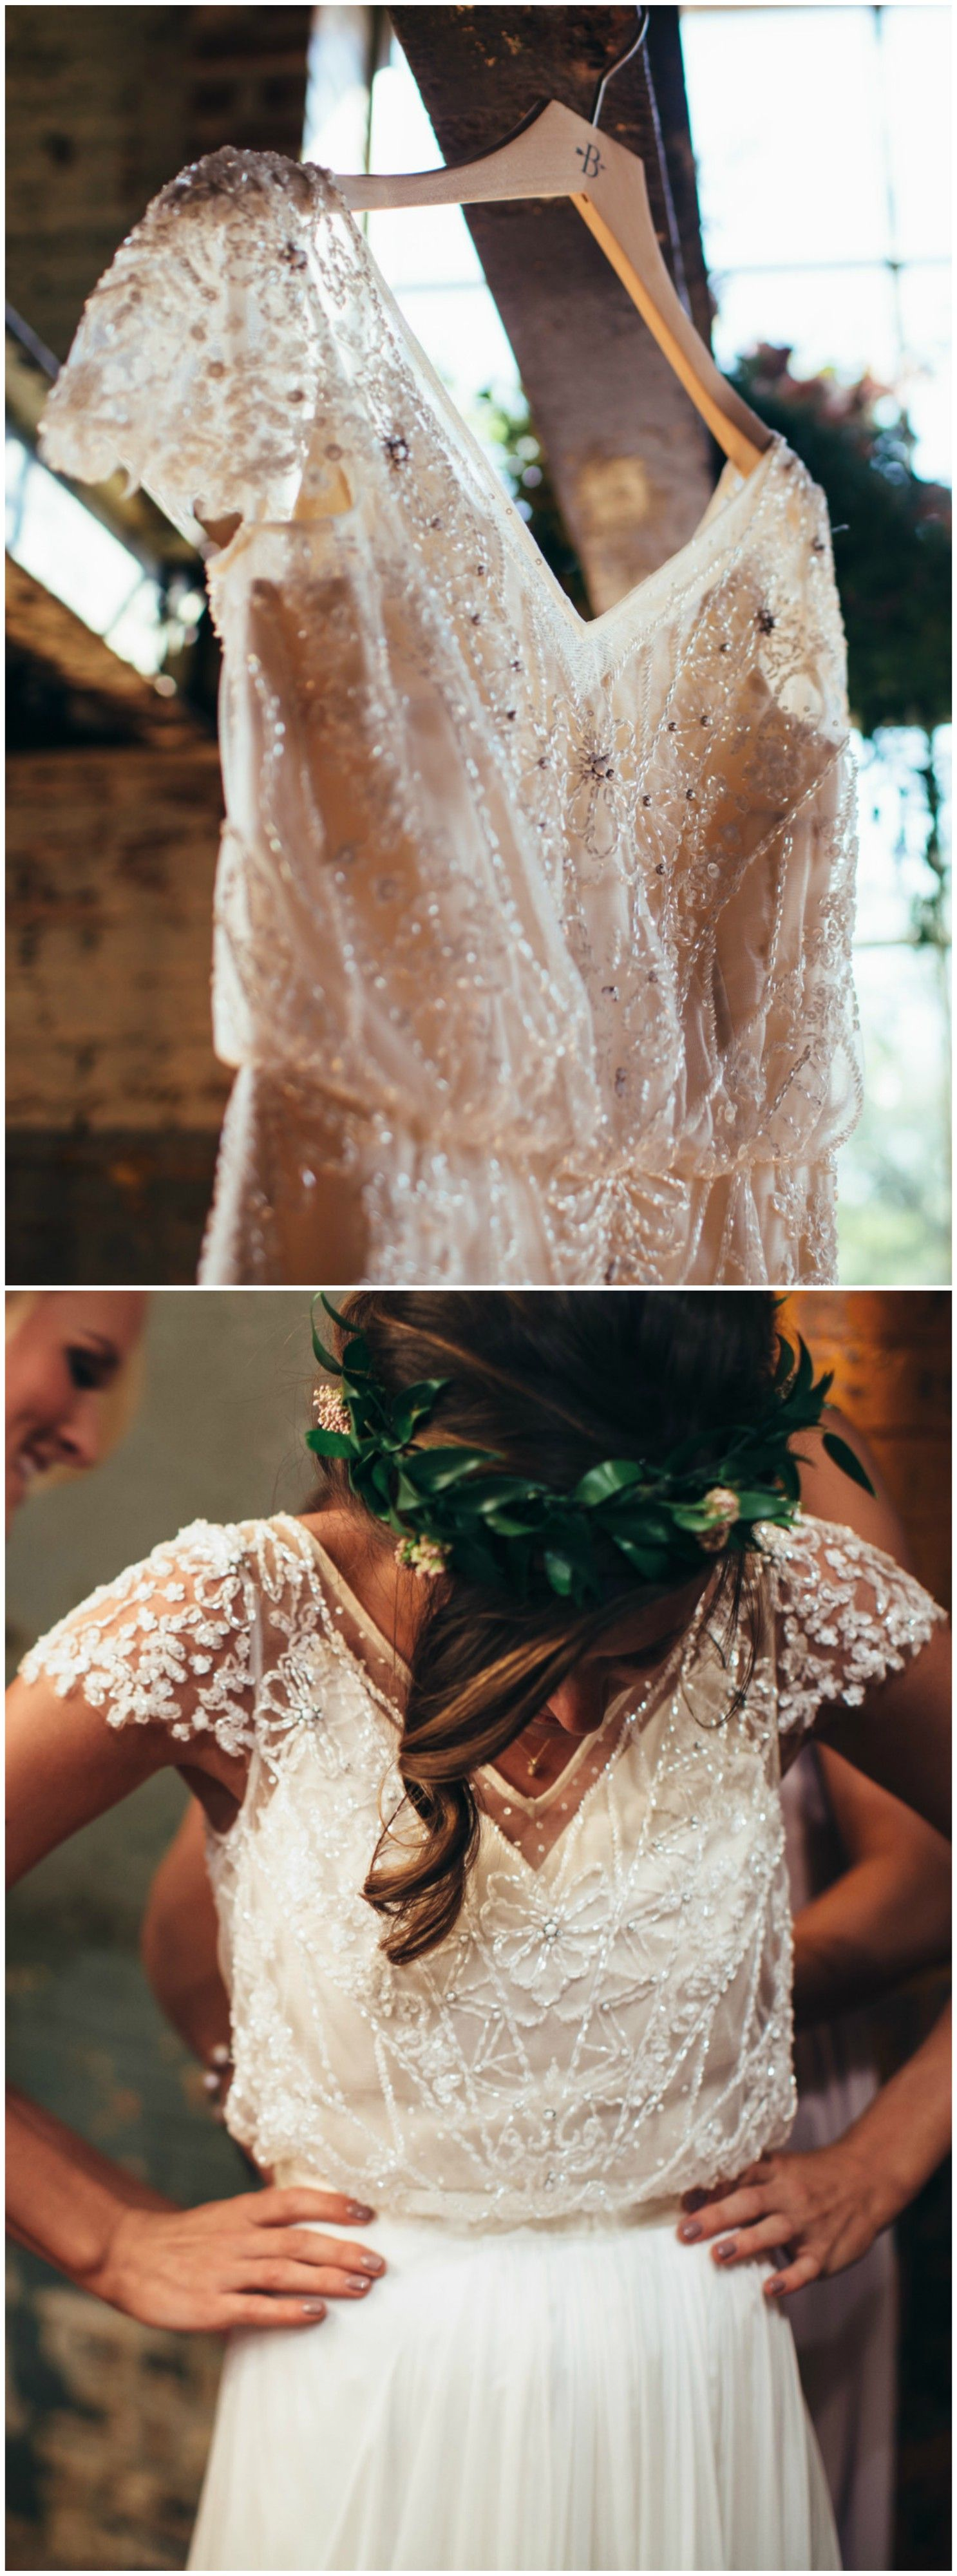 Lace hippie wedding dress  Beaded wedding dress fluttering cap sleeves chic bridal gown